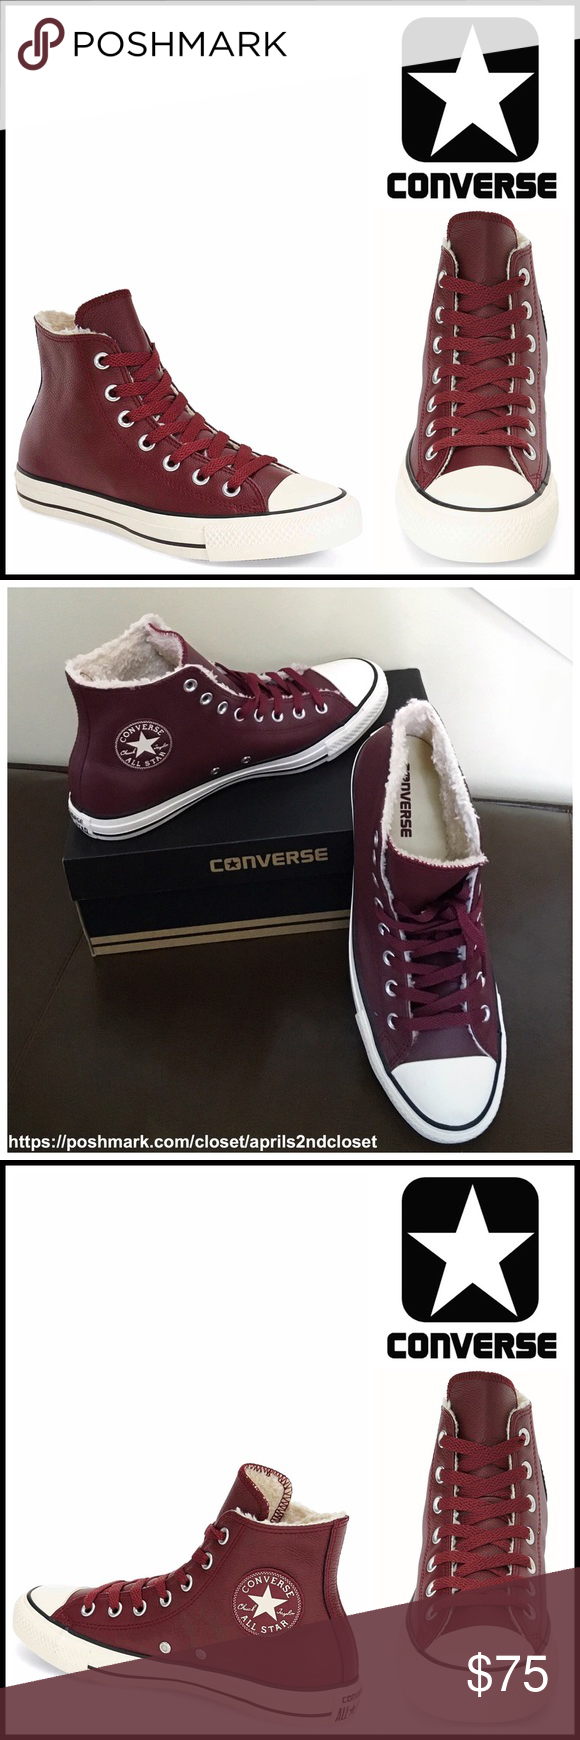 CONVERSE LEATHER SNEAKERS Faux Fur